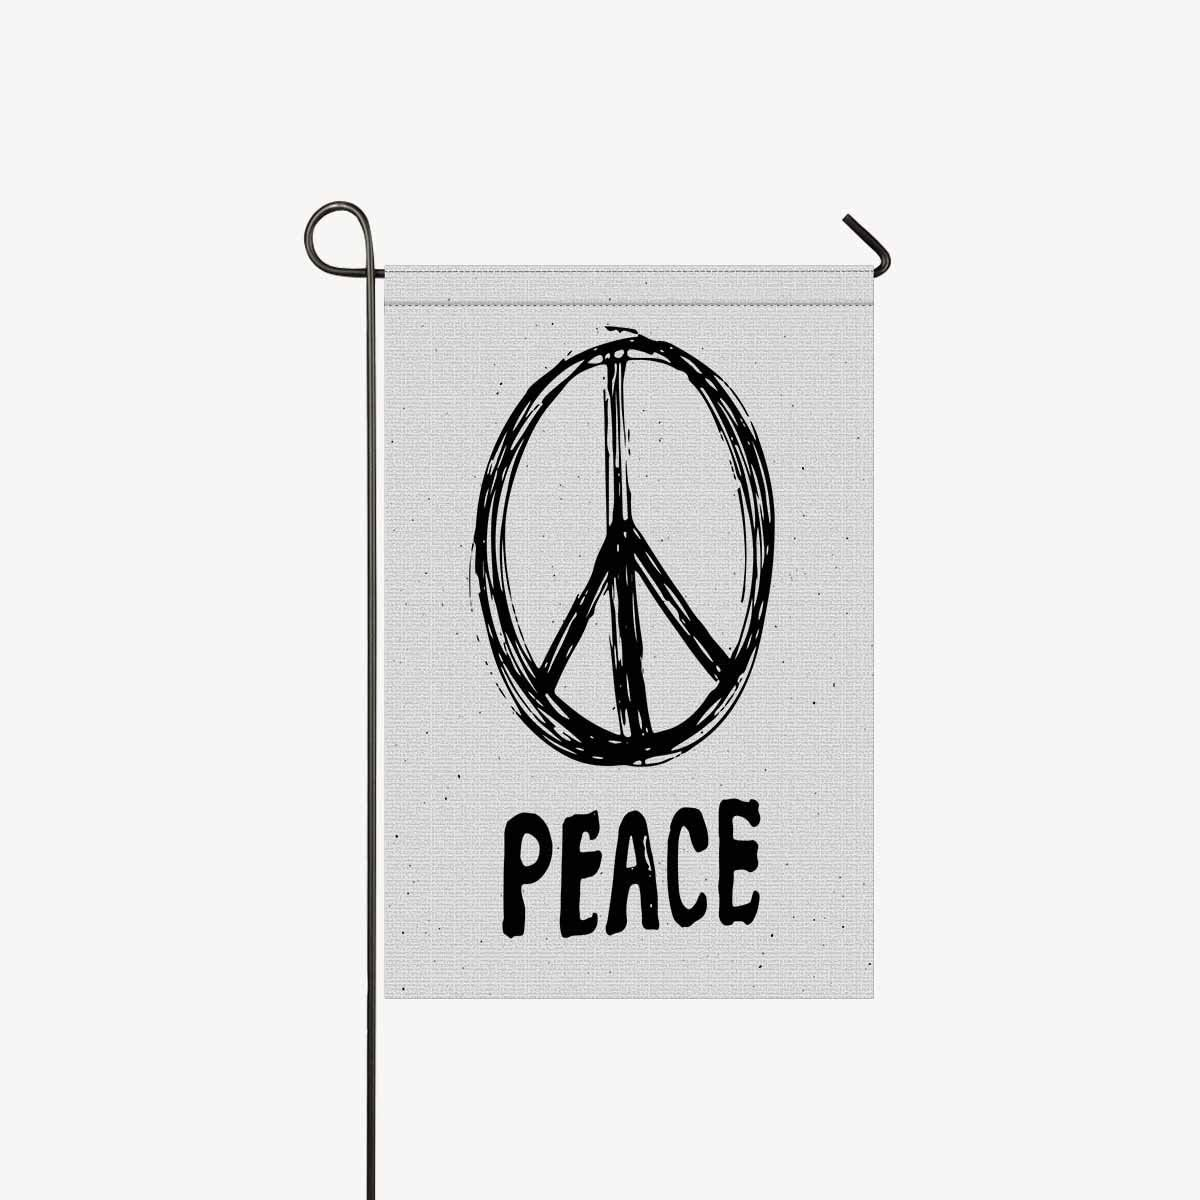 InterestPrint Peace Symbol Grunge Hippie or Pacifist Sign Garden Flag House Banner, Decorative Yard Flag for Wishing Party Home Outdoor Decor, 12